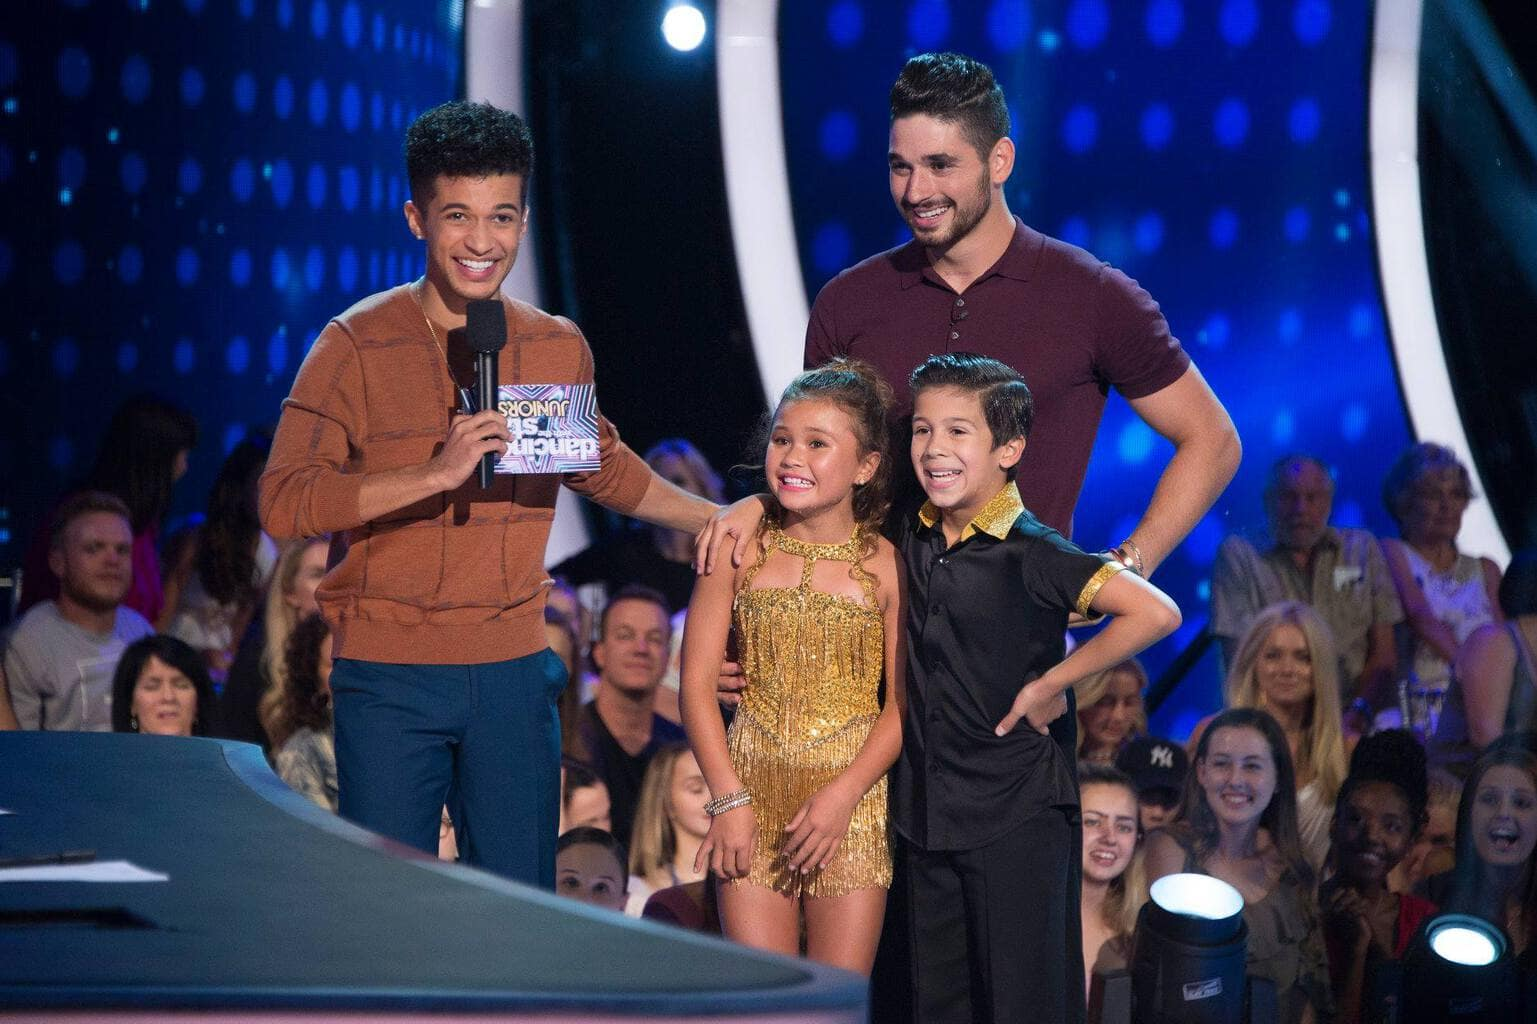 DANCING WITH THE STARS: JUNIORS - ALAN BERSTEN